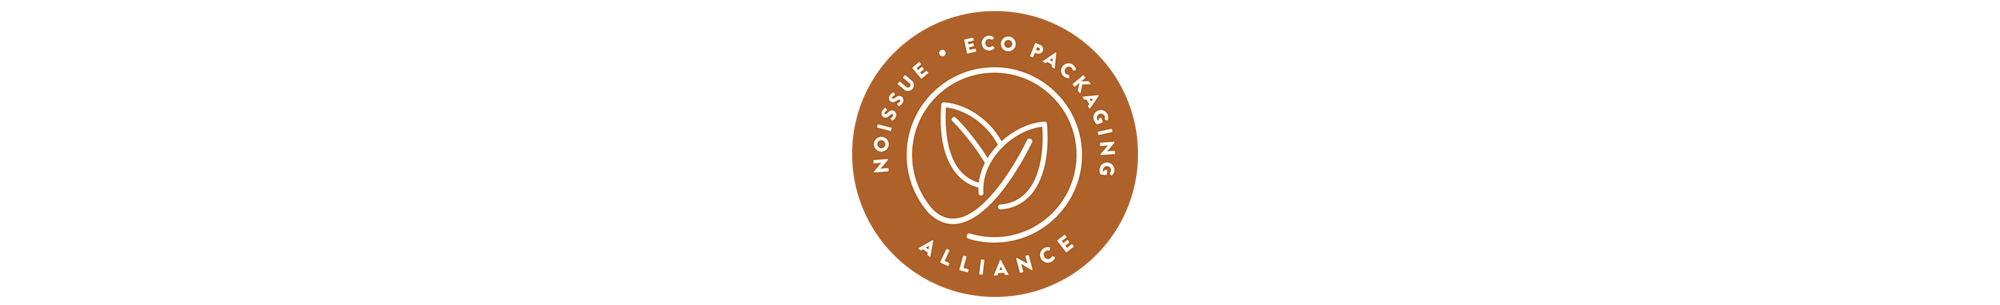 Noissue-Eco-Packaging-Alliance-Badge